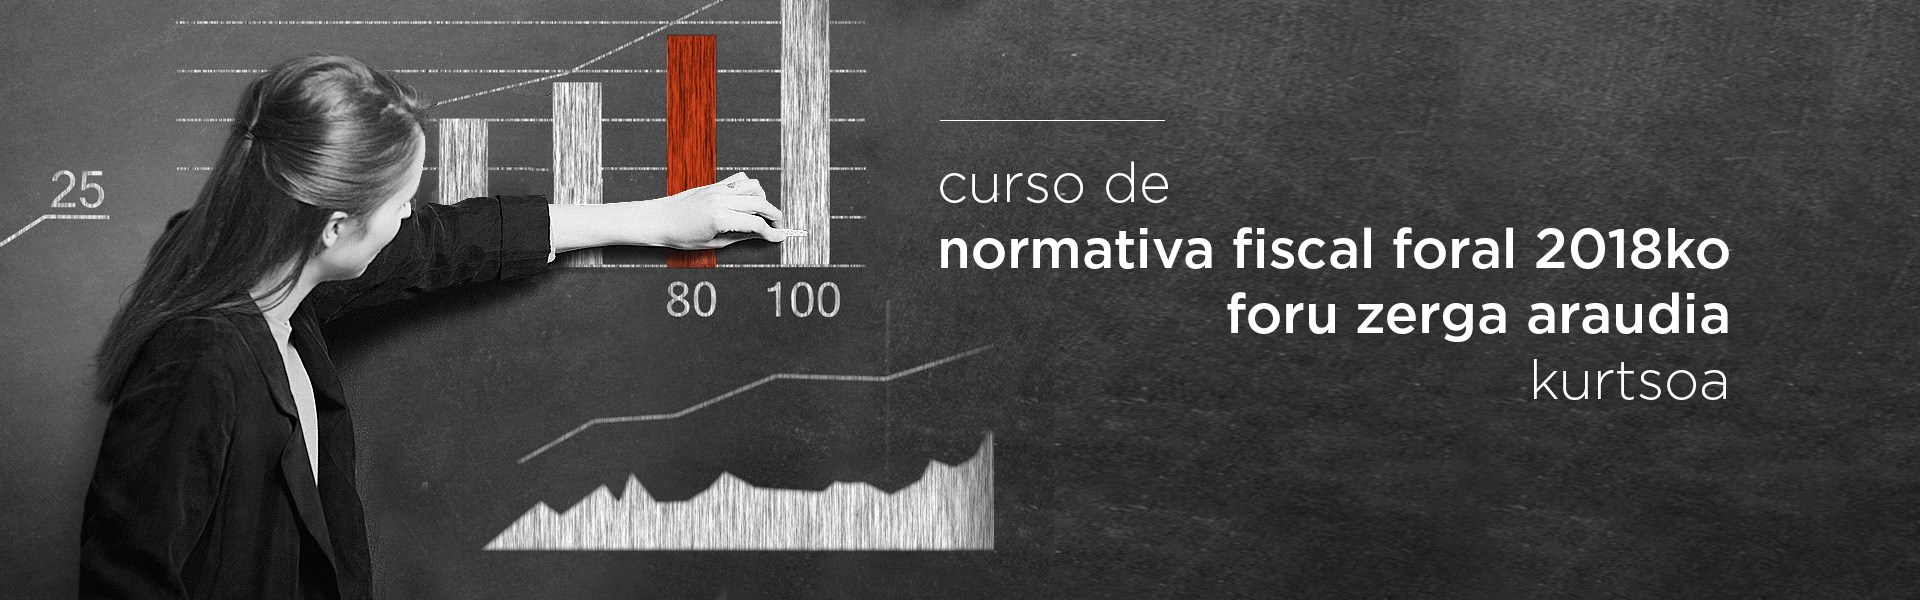 Normativa Fiscal Foral 2018